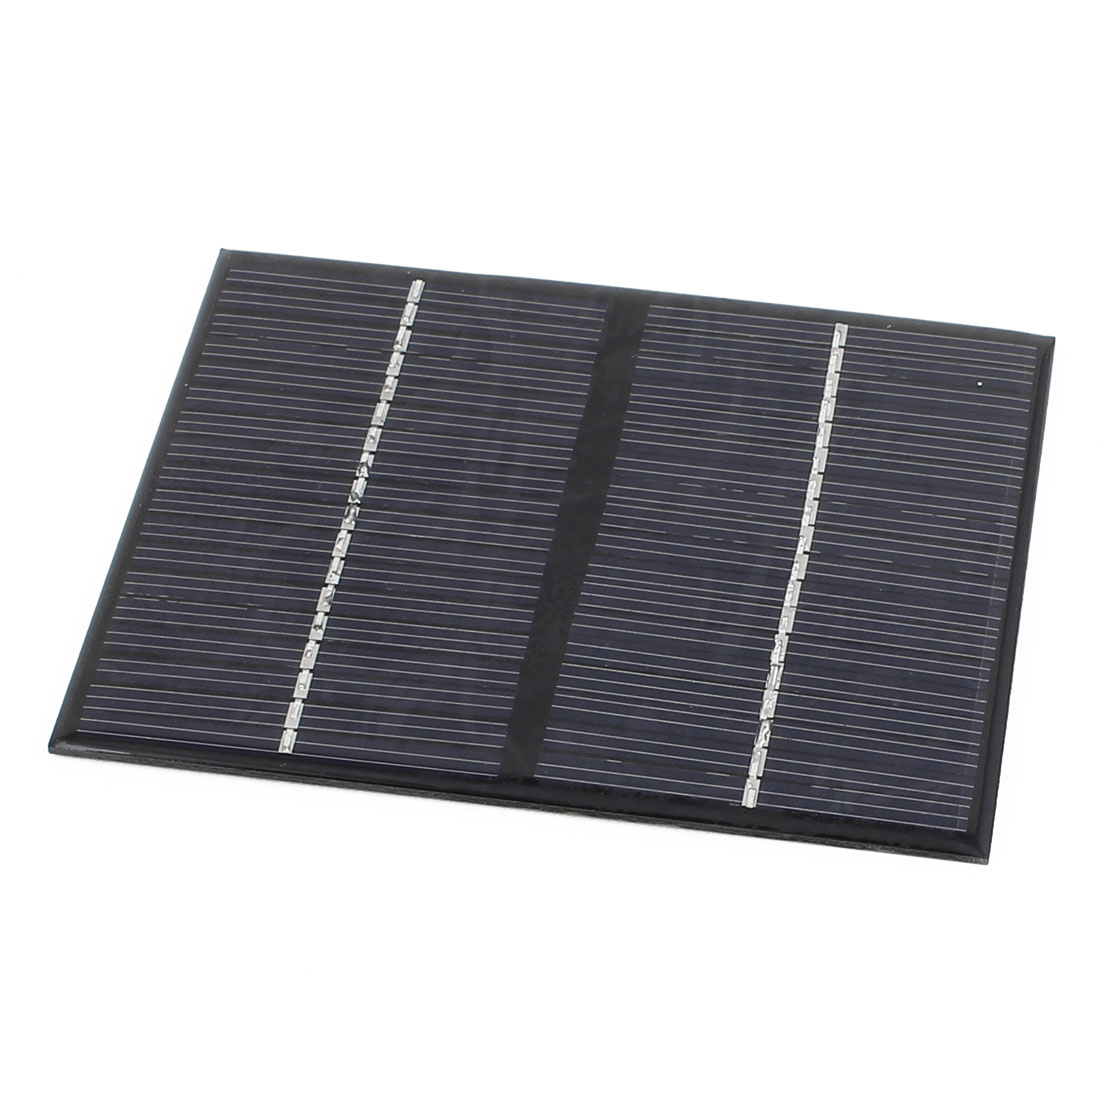 12V 1.5W DIY Polycrystallinesilicon Solar Panel Power Cell Battery Charger 115mm x 90mm